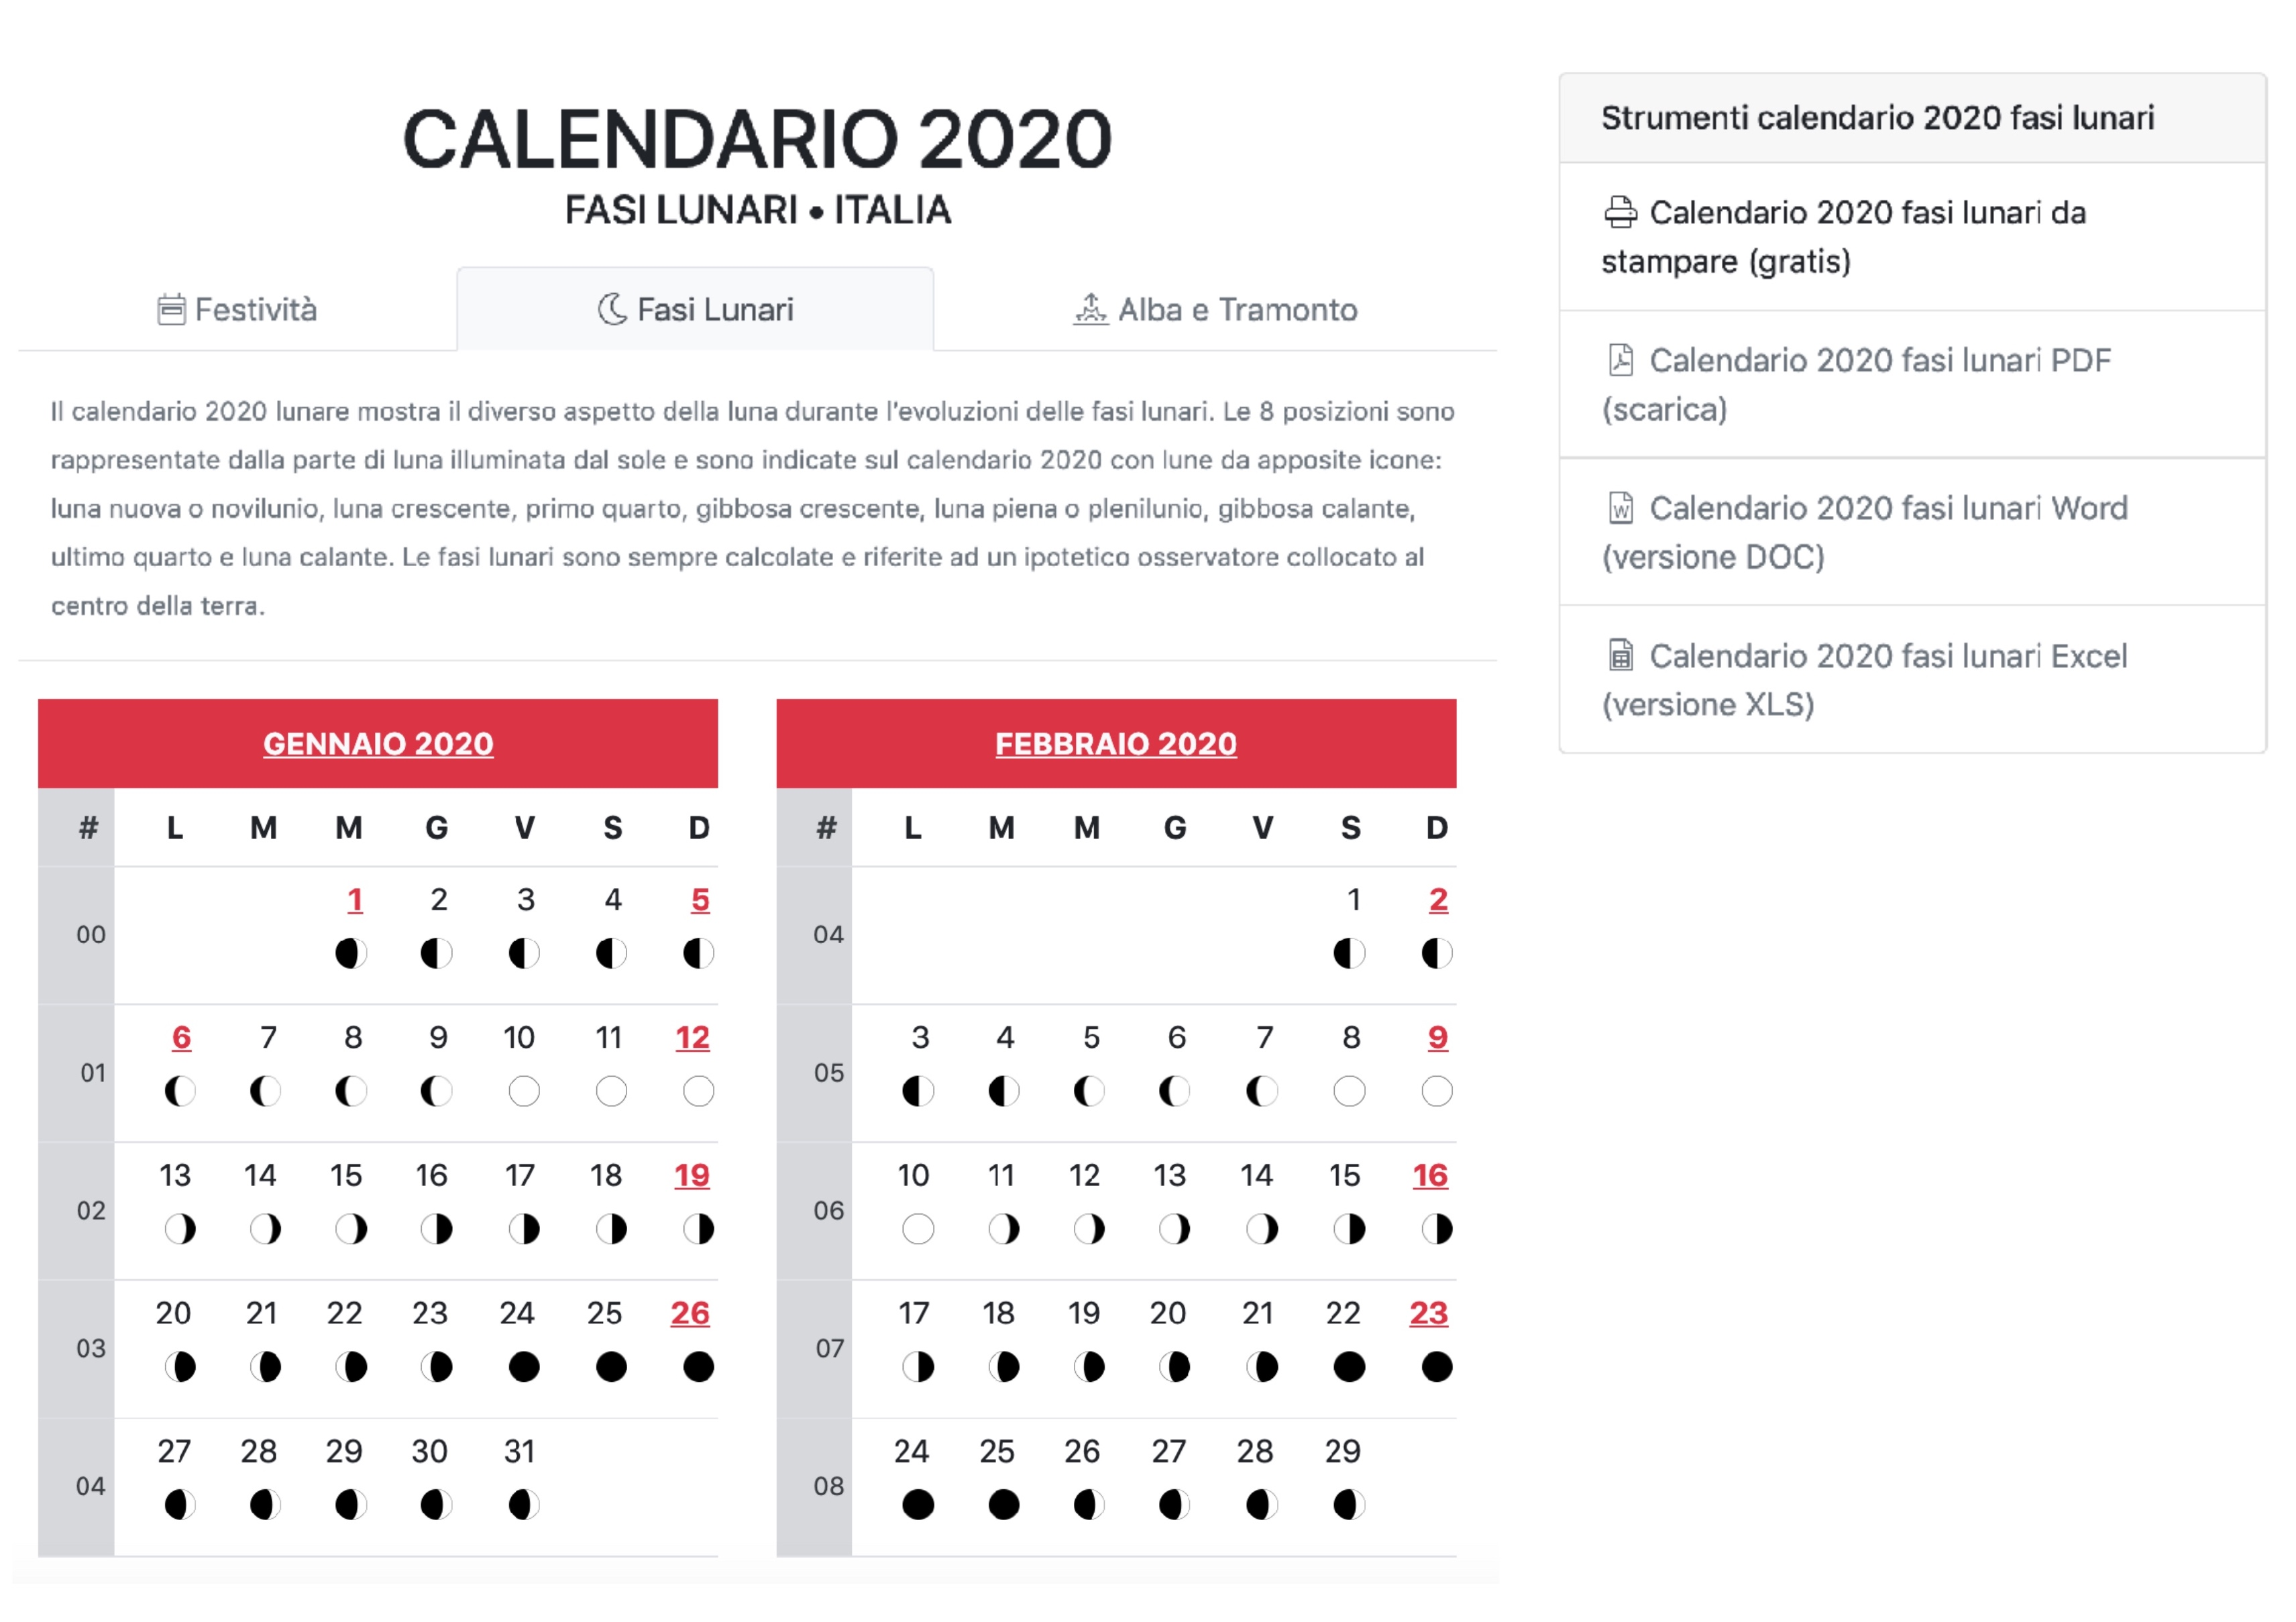 Calendario Fasi Lunari 2020.Fasi Lunari Piu Vicine Con Calendario 2020 Close Up